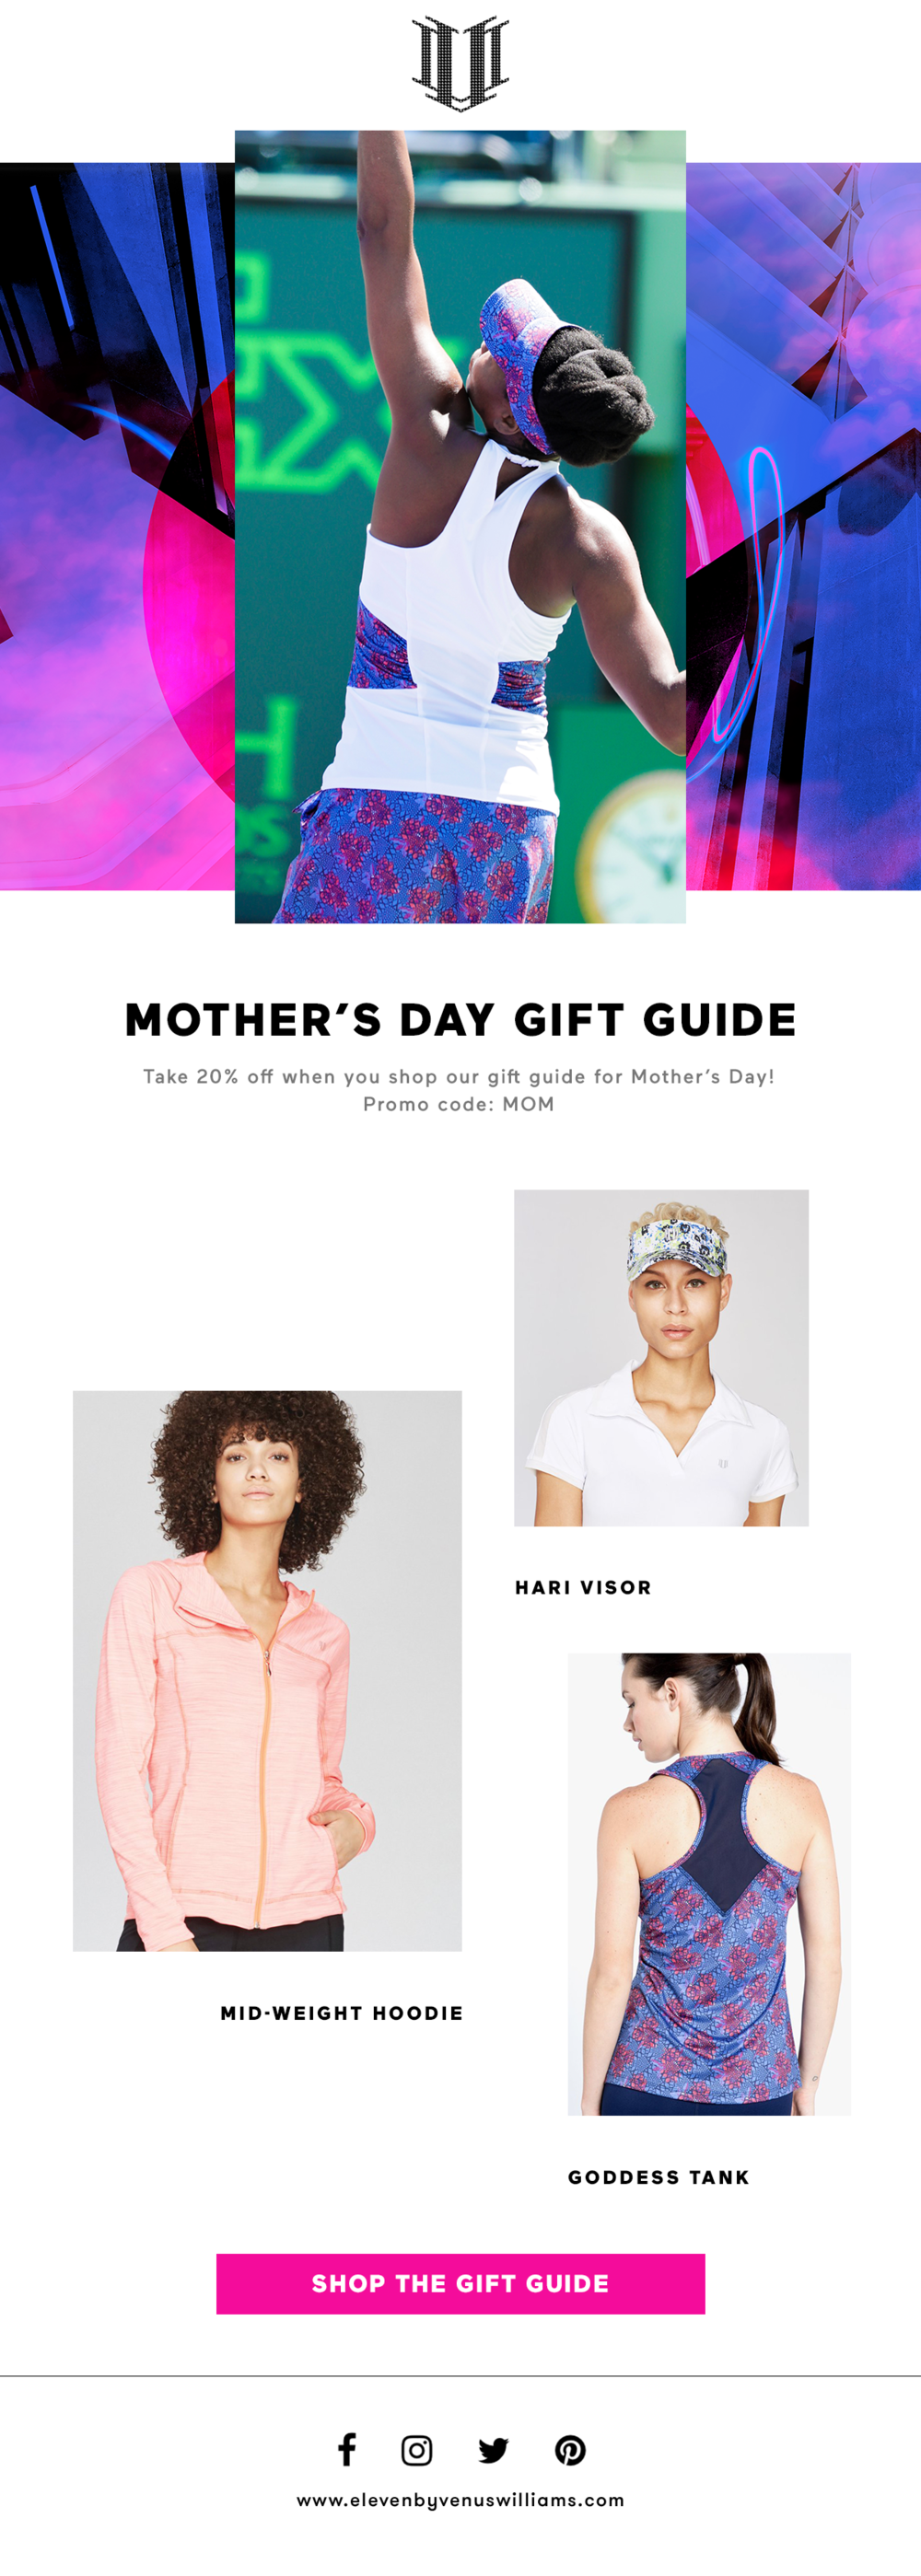 Mother's Day Gift Guide Email Blast